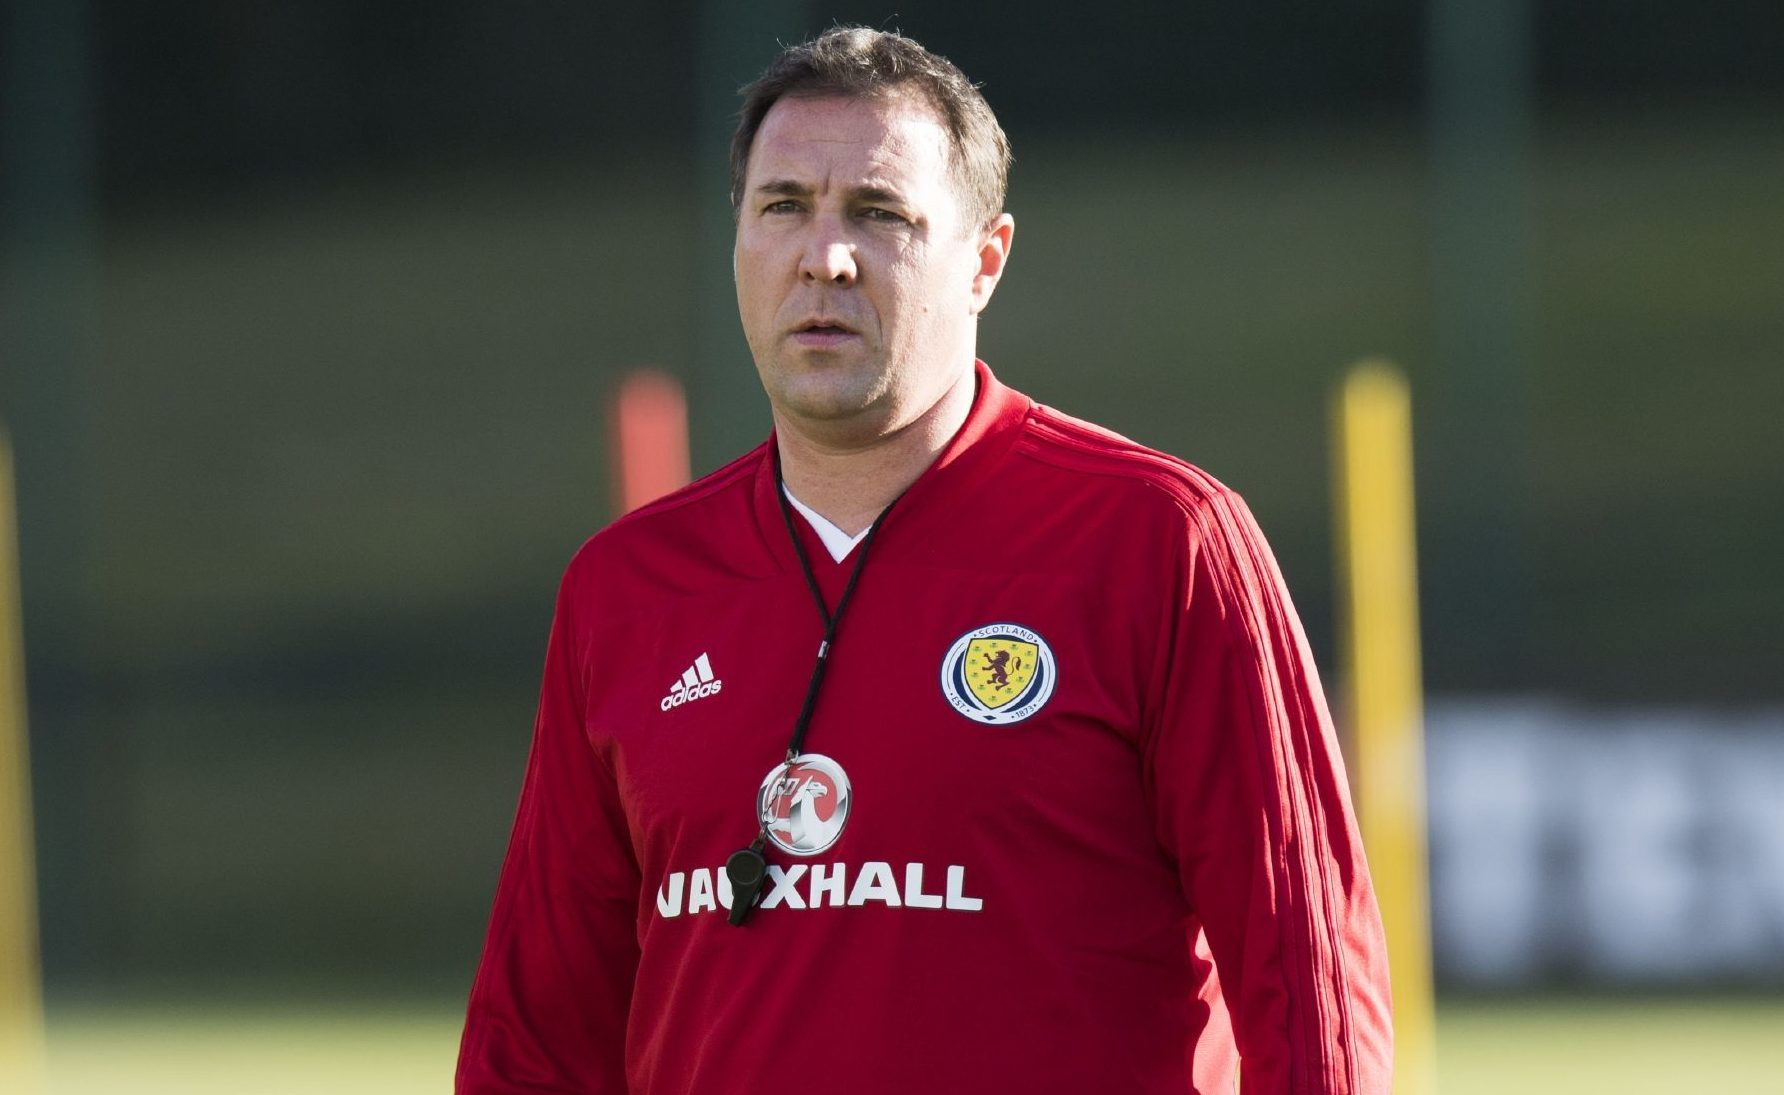 Malky Mackay's last job in management was at Wigan